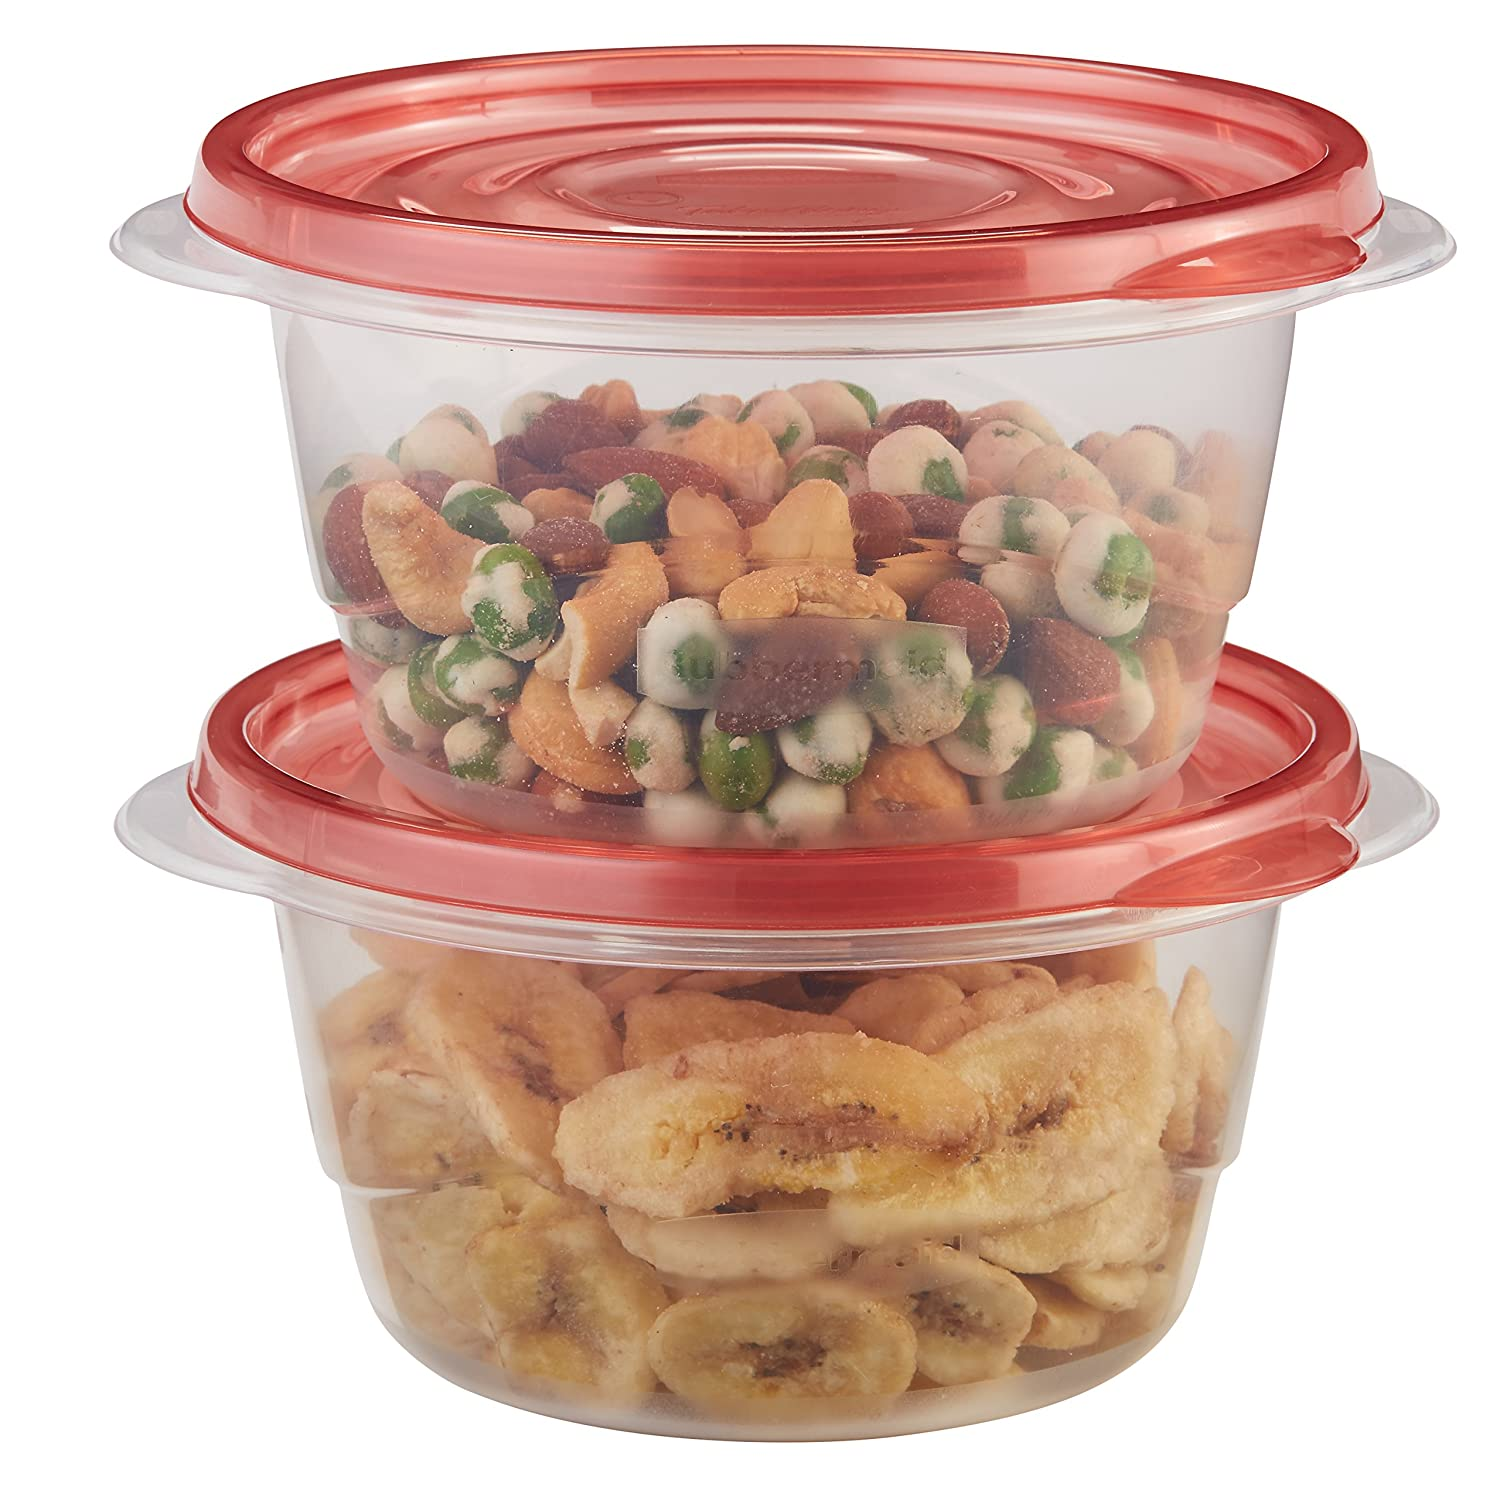 Amazon.com: Rubbermaid TakeAlongs 3.2 Cup Small Bowls, Food Storage  Container, 2 Pack: Food Storage: Kitchen U0026 Dining